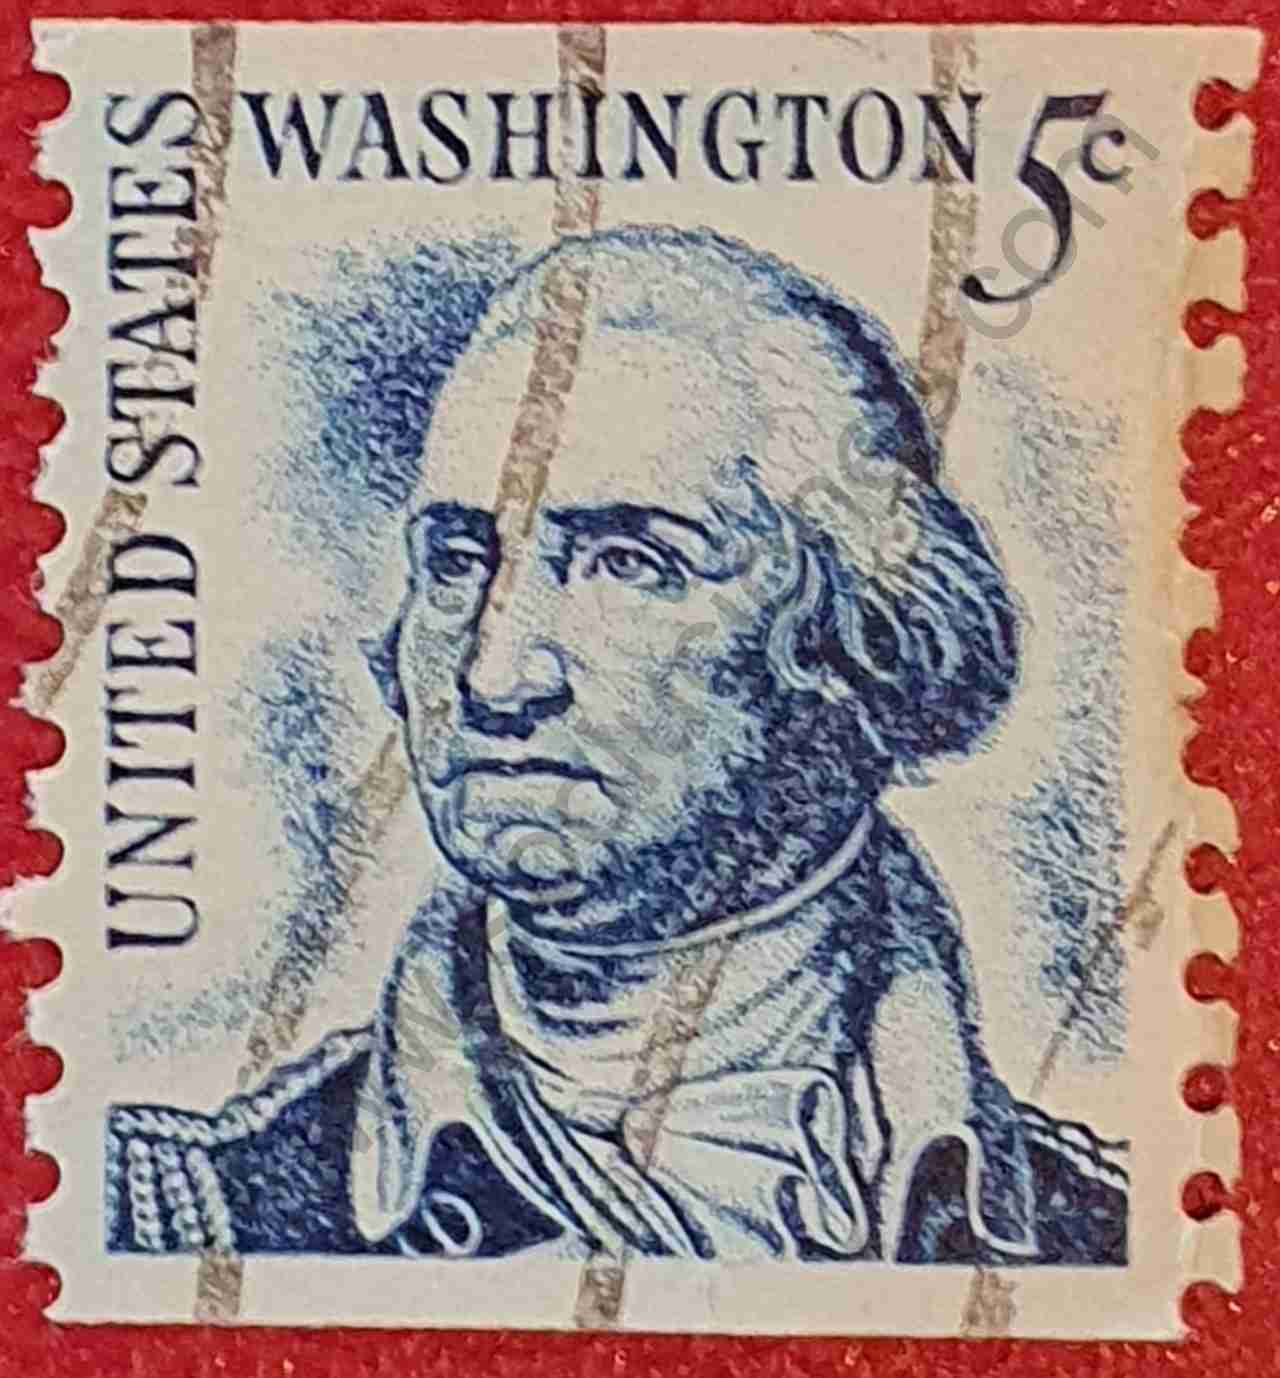 George Washington 5c - Sello Estados Unidos 1966